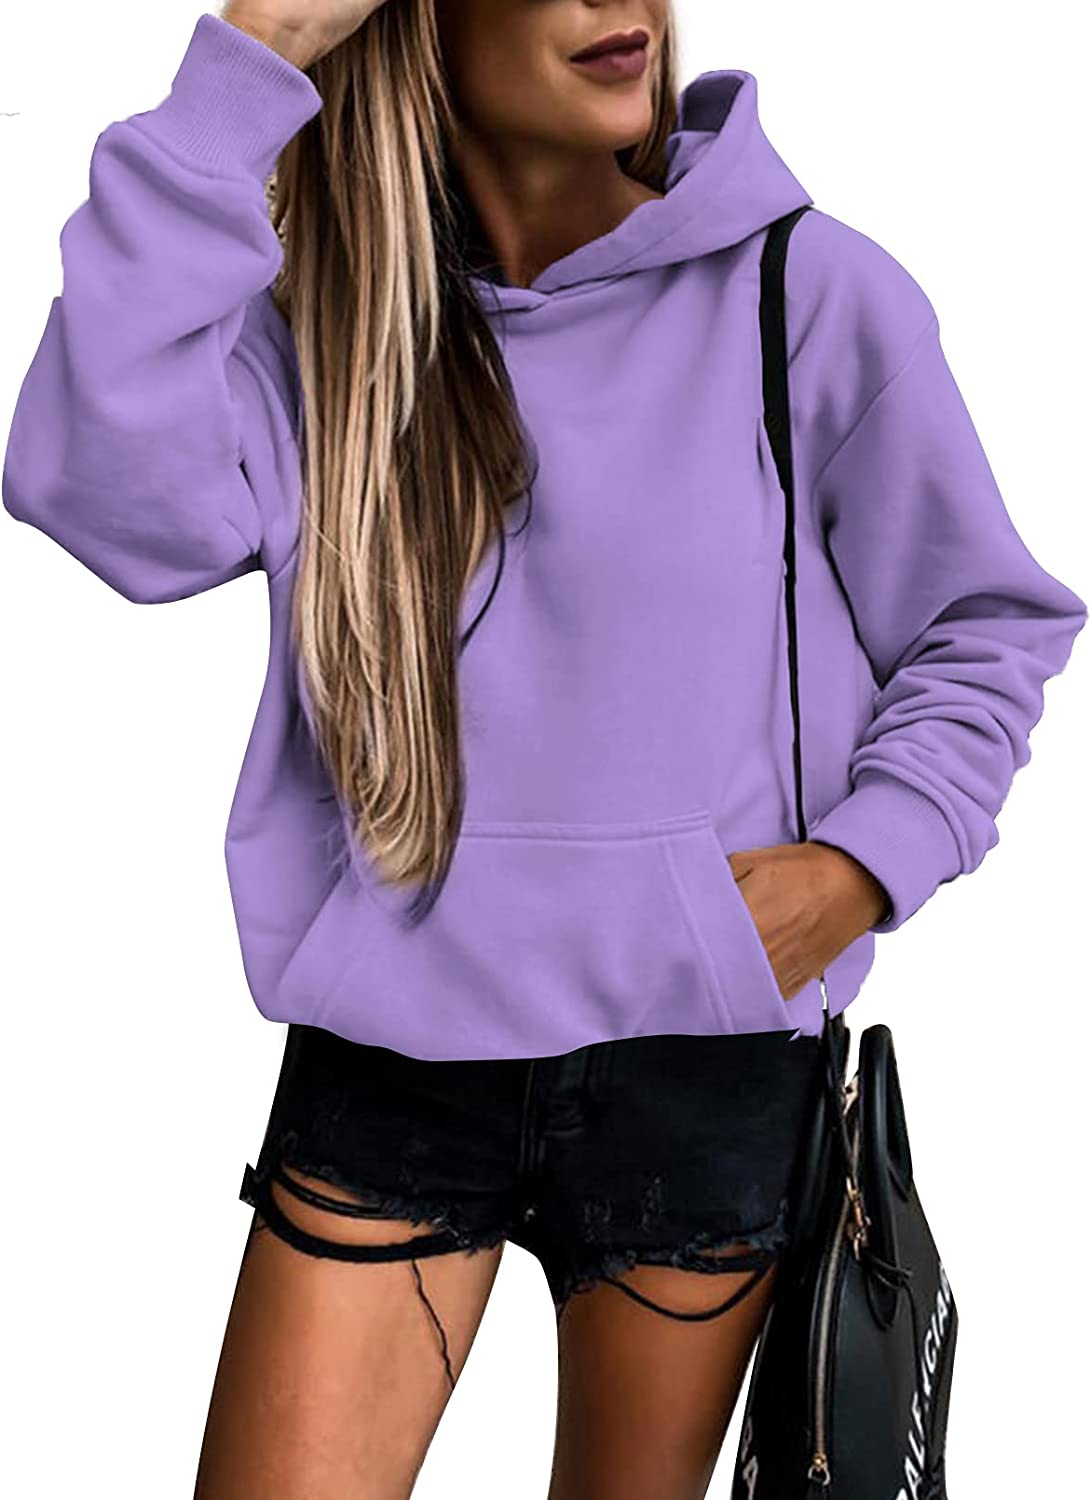 SHEWIN Women's Fashion Hoodies Solid Color Pullover Tops Long Sleeve Hooded Sweatshirts with Pocket(S-XXL)